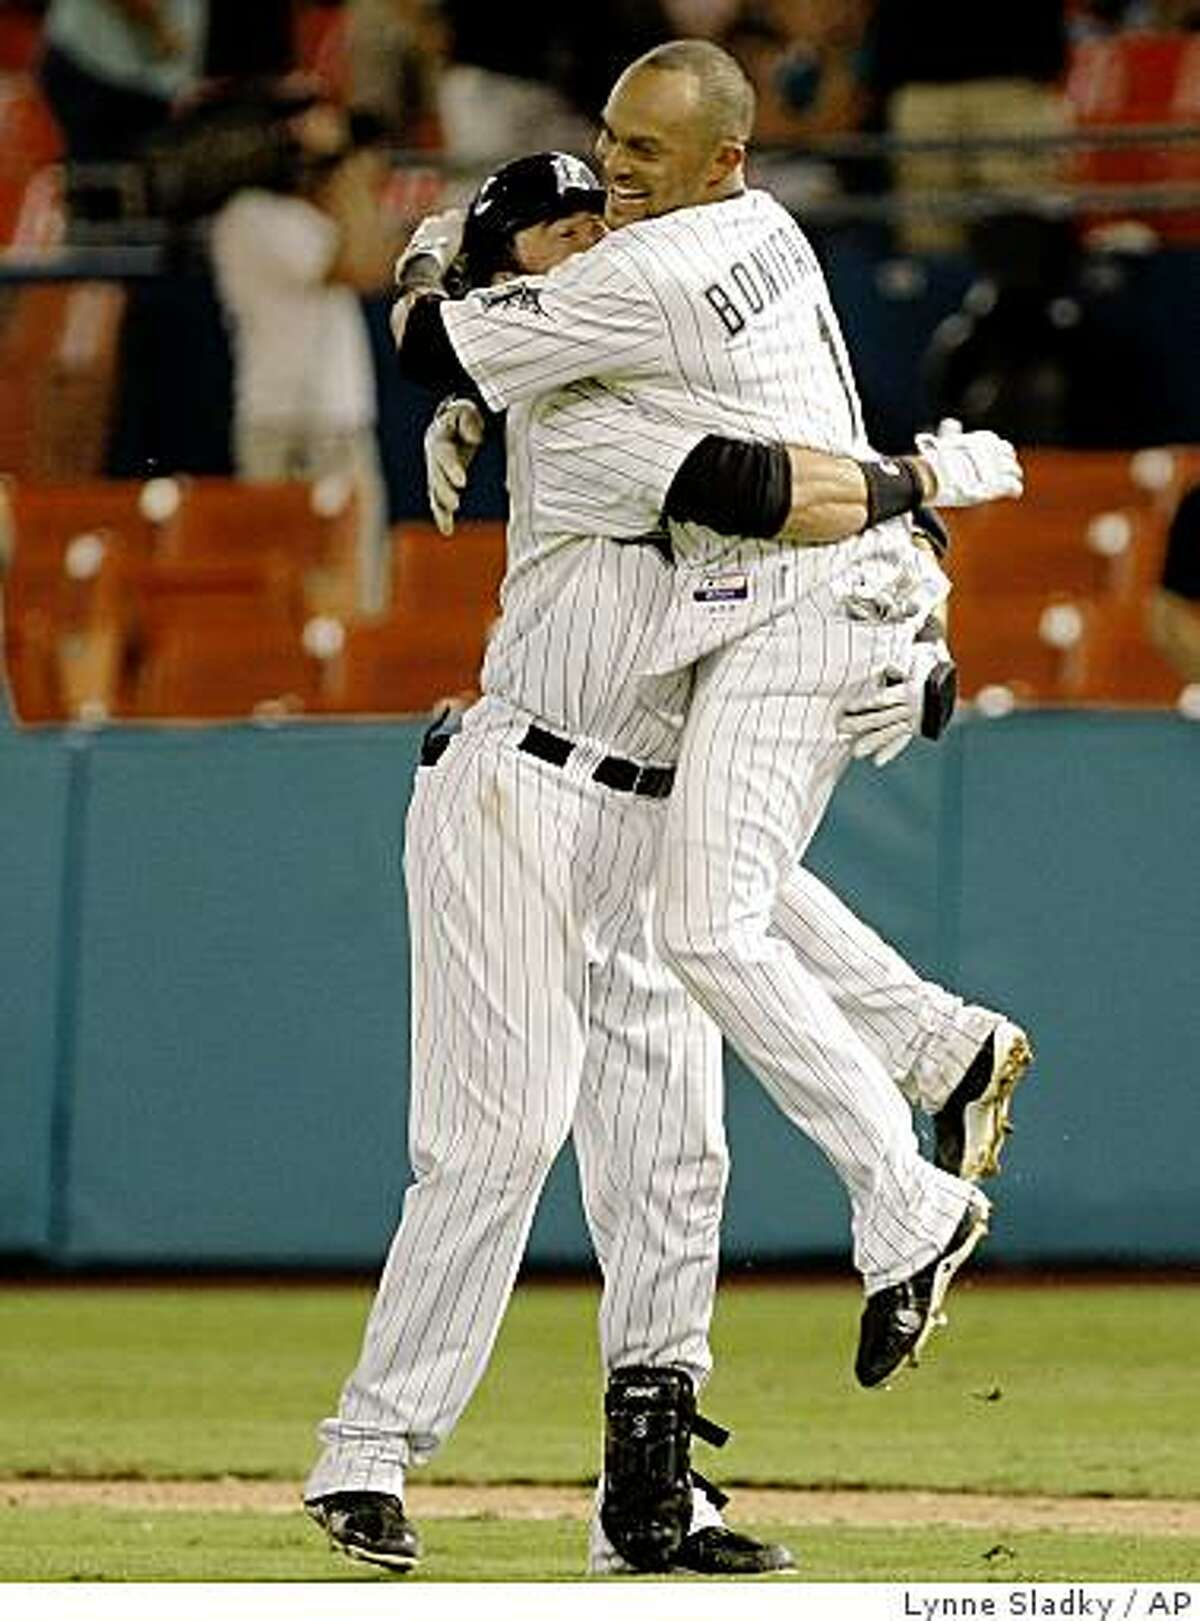 Florida Marlins' Jorge Cantu, left, hugs Emilio Bonifacio, right, after Bonifacio scored on a single by Cantu in the 12th inning to win 7-6 over the Baltimore Orioles during an interleague baseball game at Land Shark Stadium in Miami Tuesday, June 23, 2009. (AP Photo/Lynne Sladky)